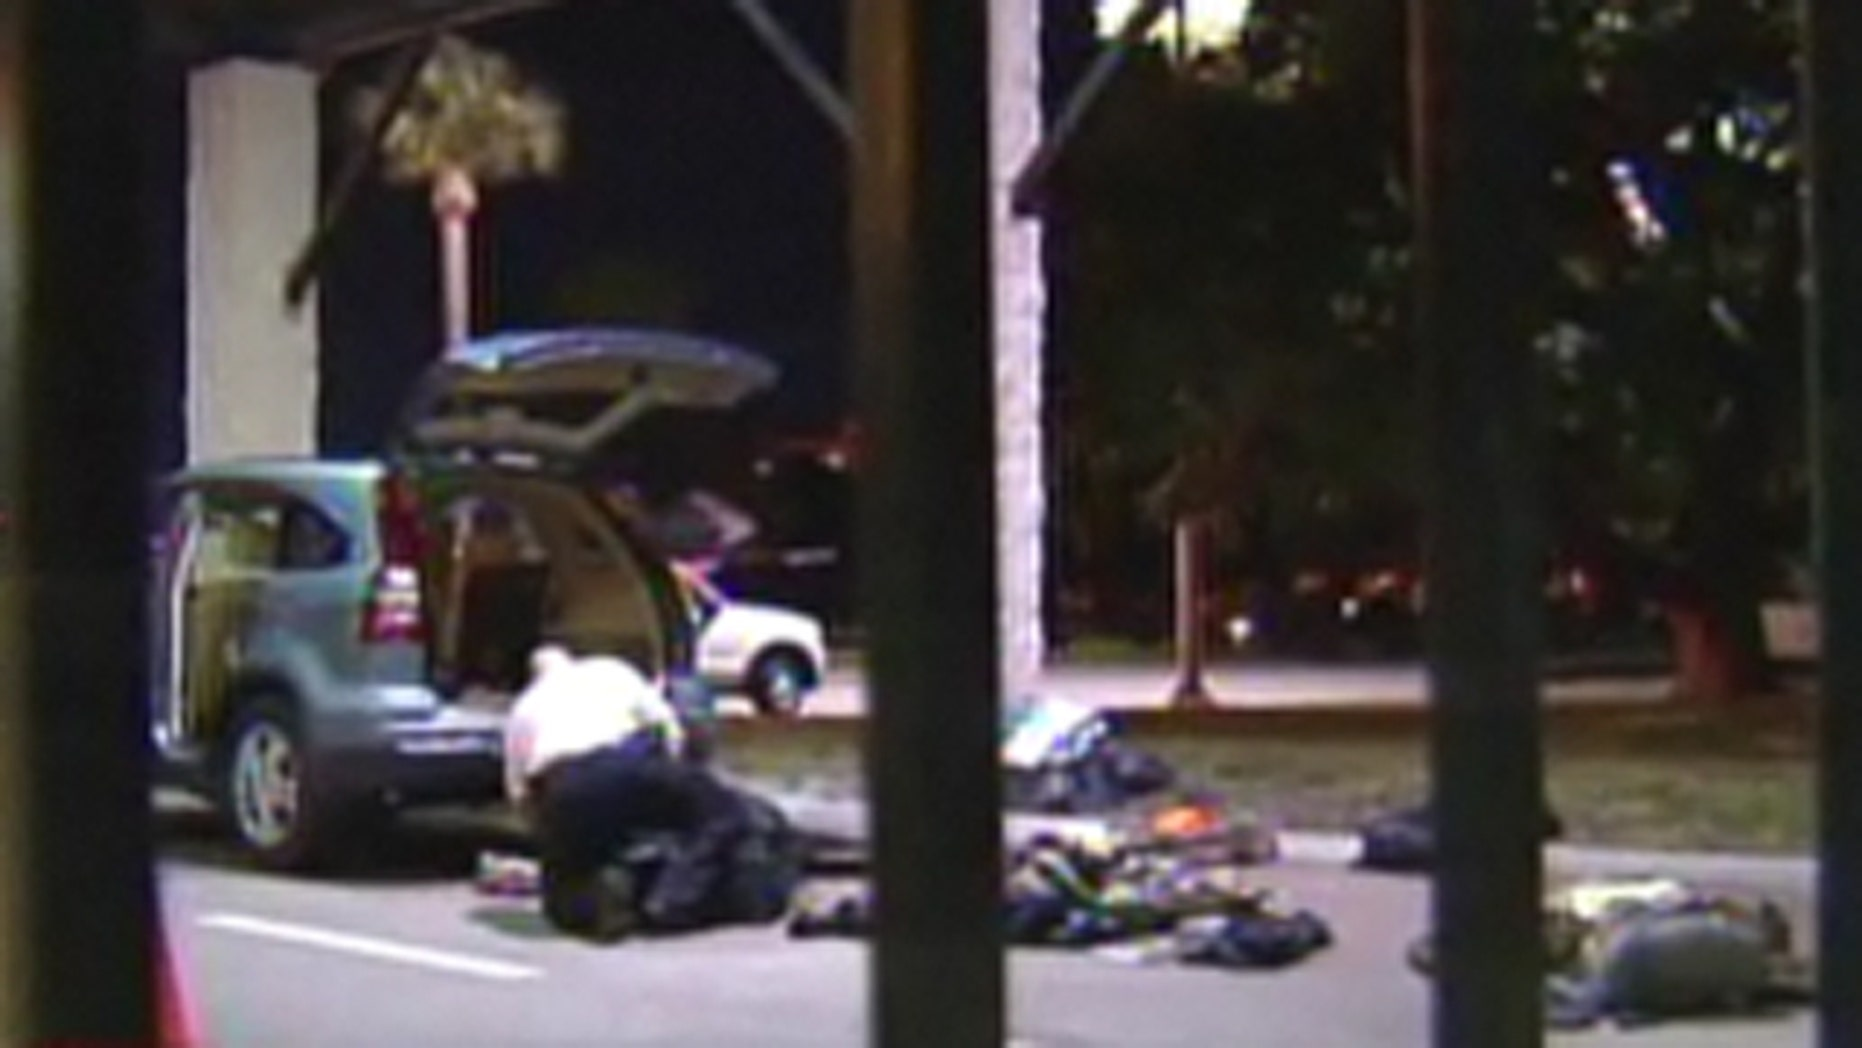 Officials at MacDill Air Force Base say one of the two people stopped at the base's Bayshore gate Monday night is an active duty military member who currently has AWOL status.